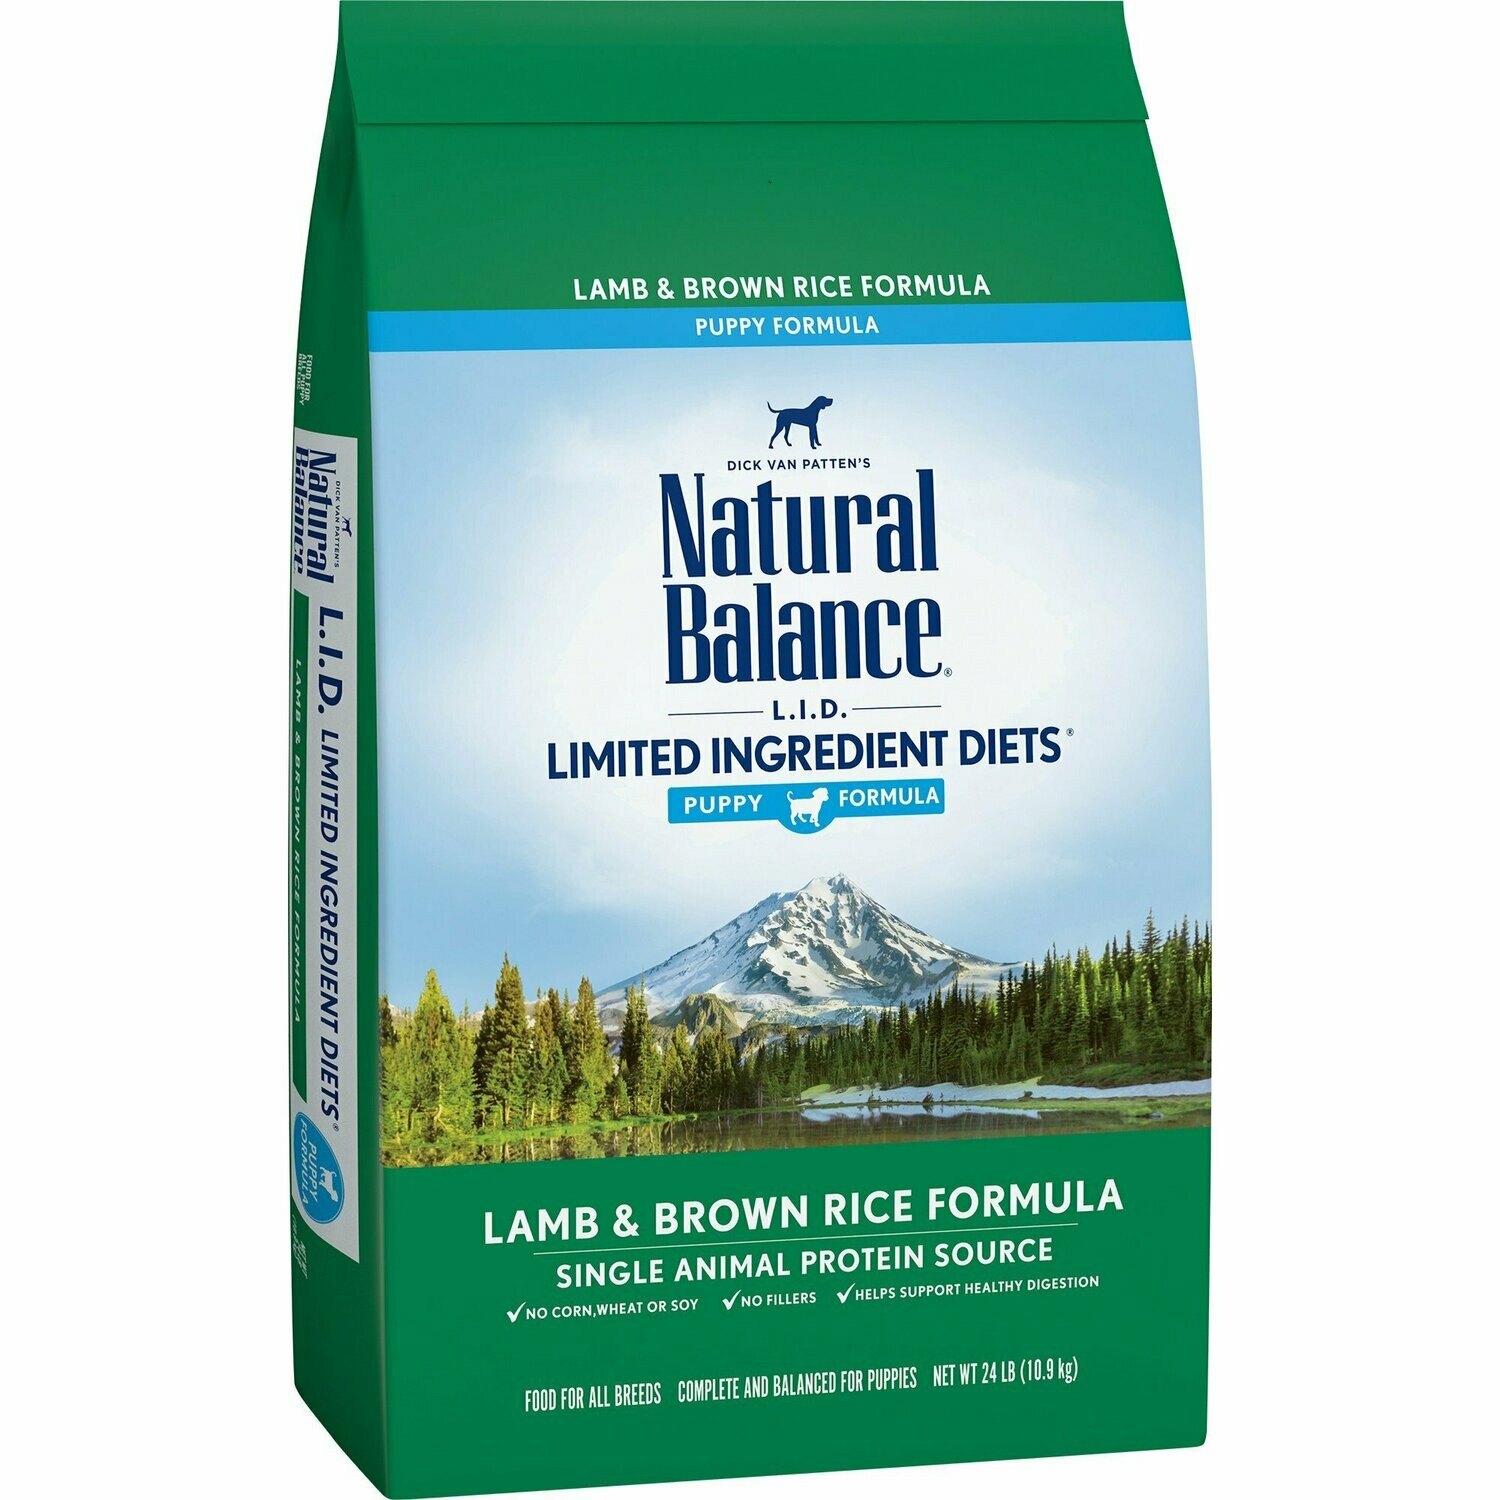 Natural balance limited ingredient diet puppy formula lamb and brown rice 4.5 pounds (3/20)